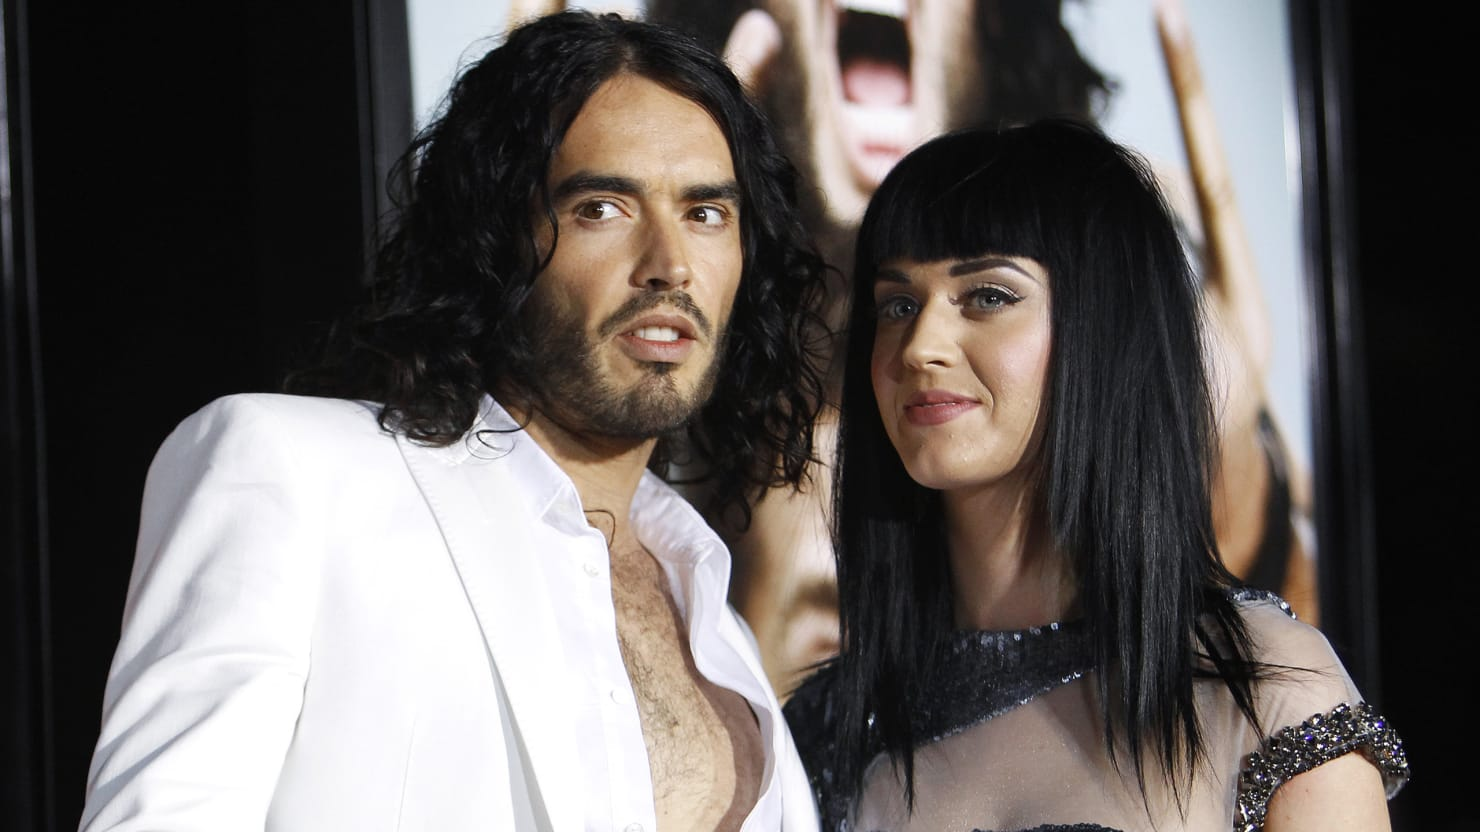 Russell Brand and Katy Perry are going to get married naked 03.02.2010 82